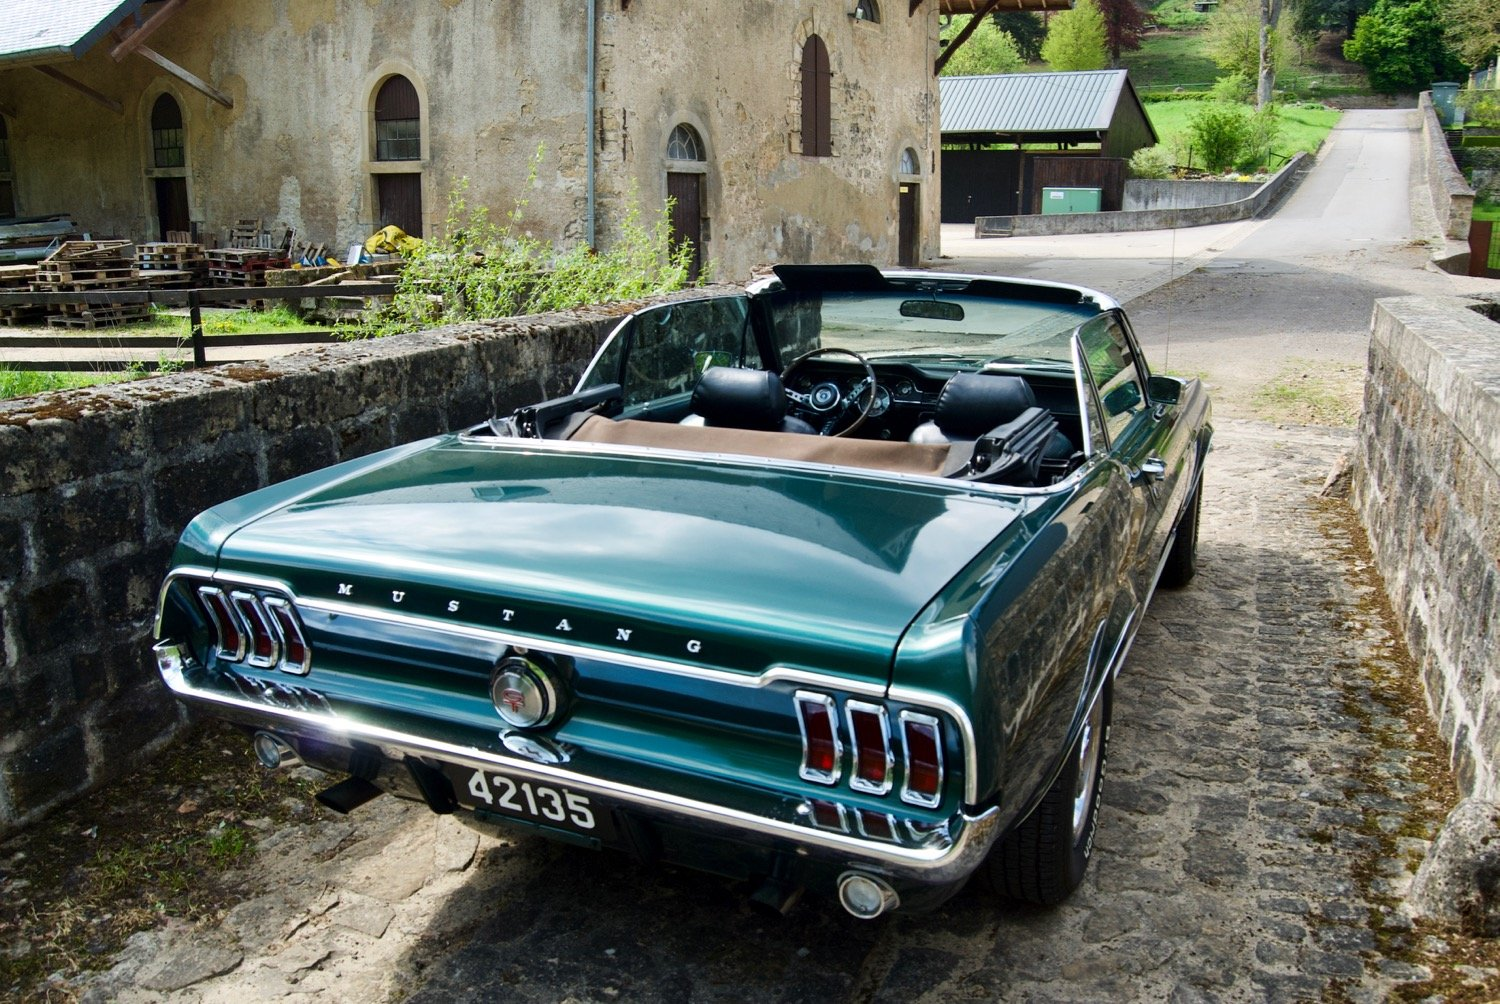 Tilly - 1967 Ford Mustang Convertible V8 - rear on bridge